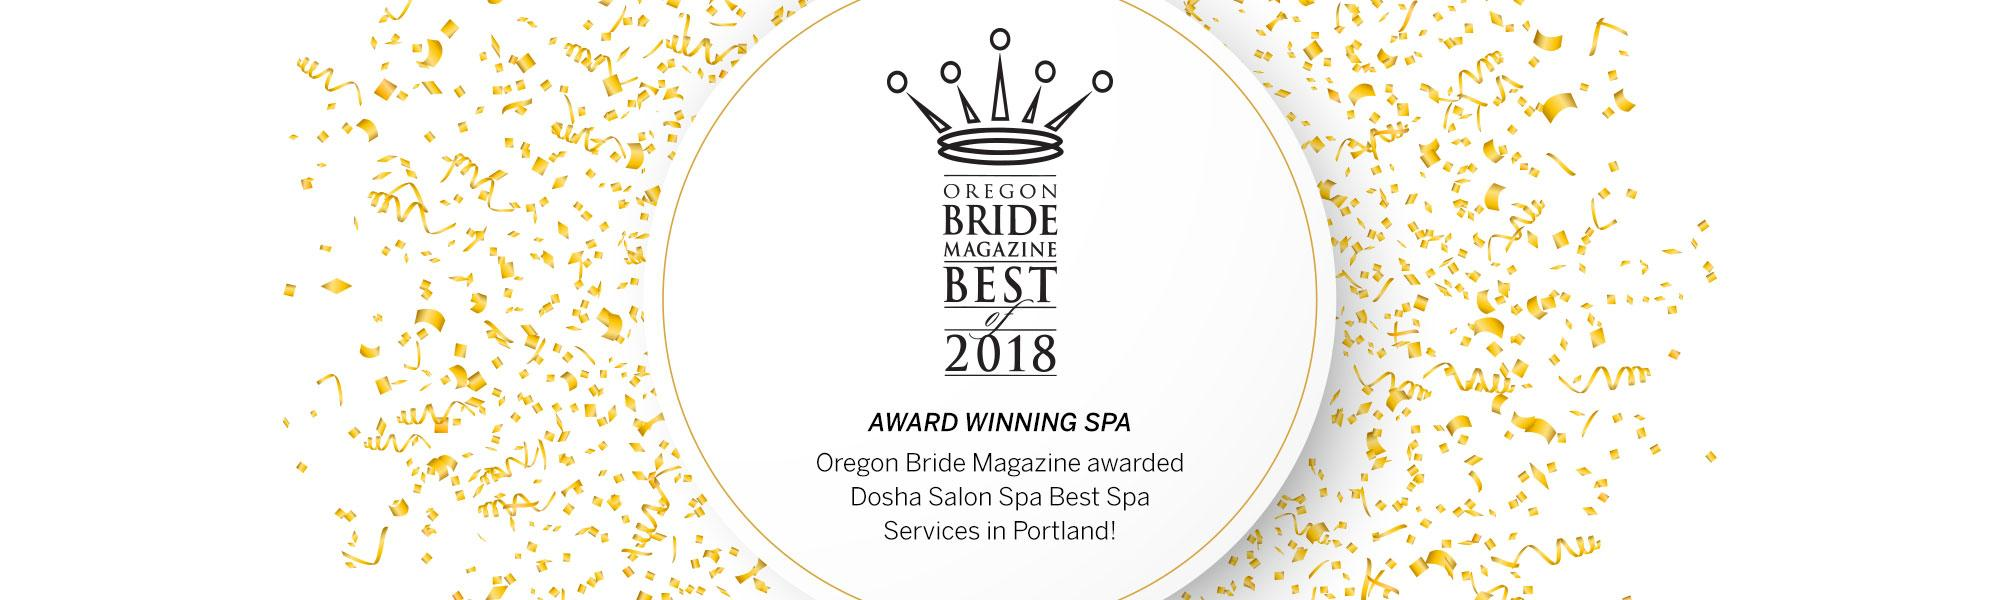 Best Spa, Portland, Salon, Spa, Oregon Bride, Best